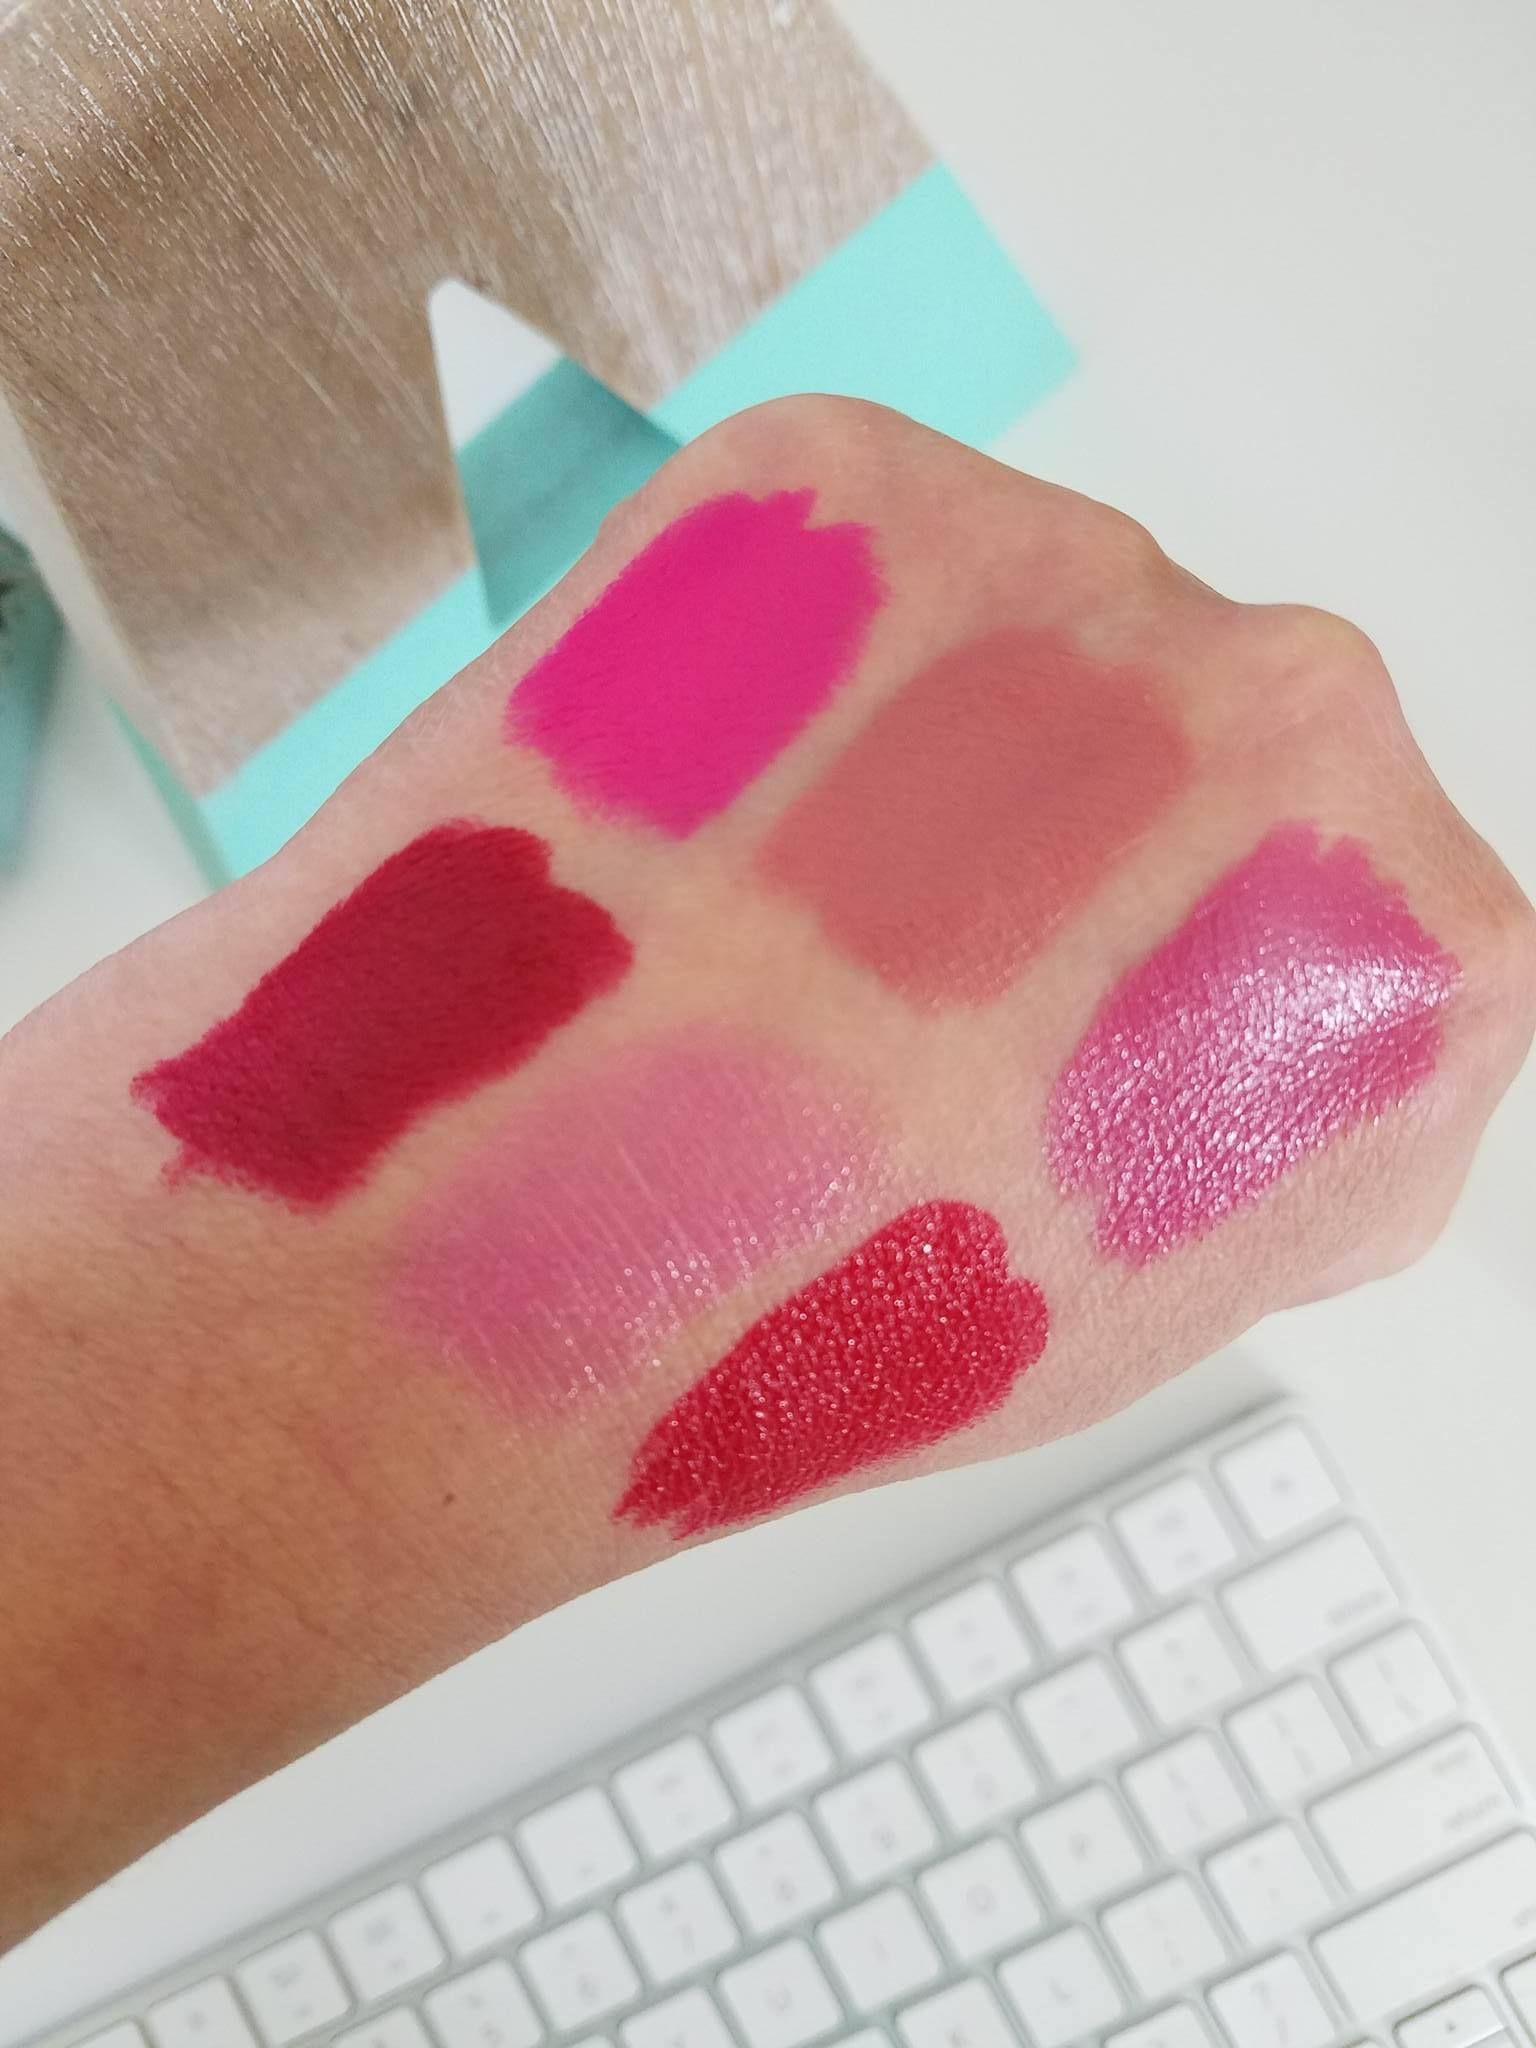 urban decay swatches lipsticks